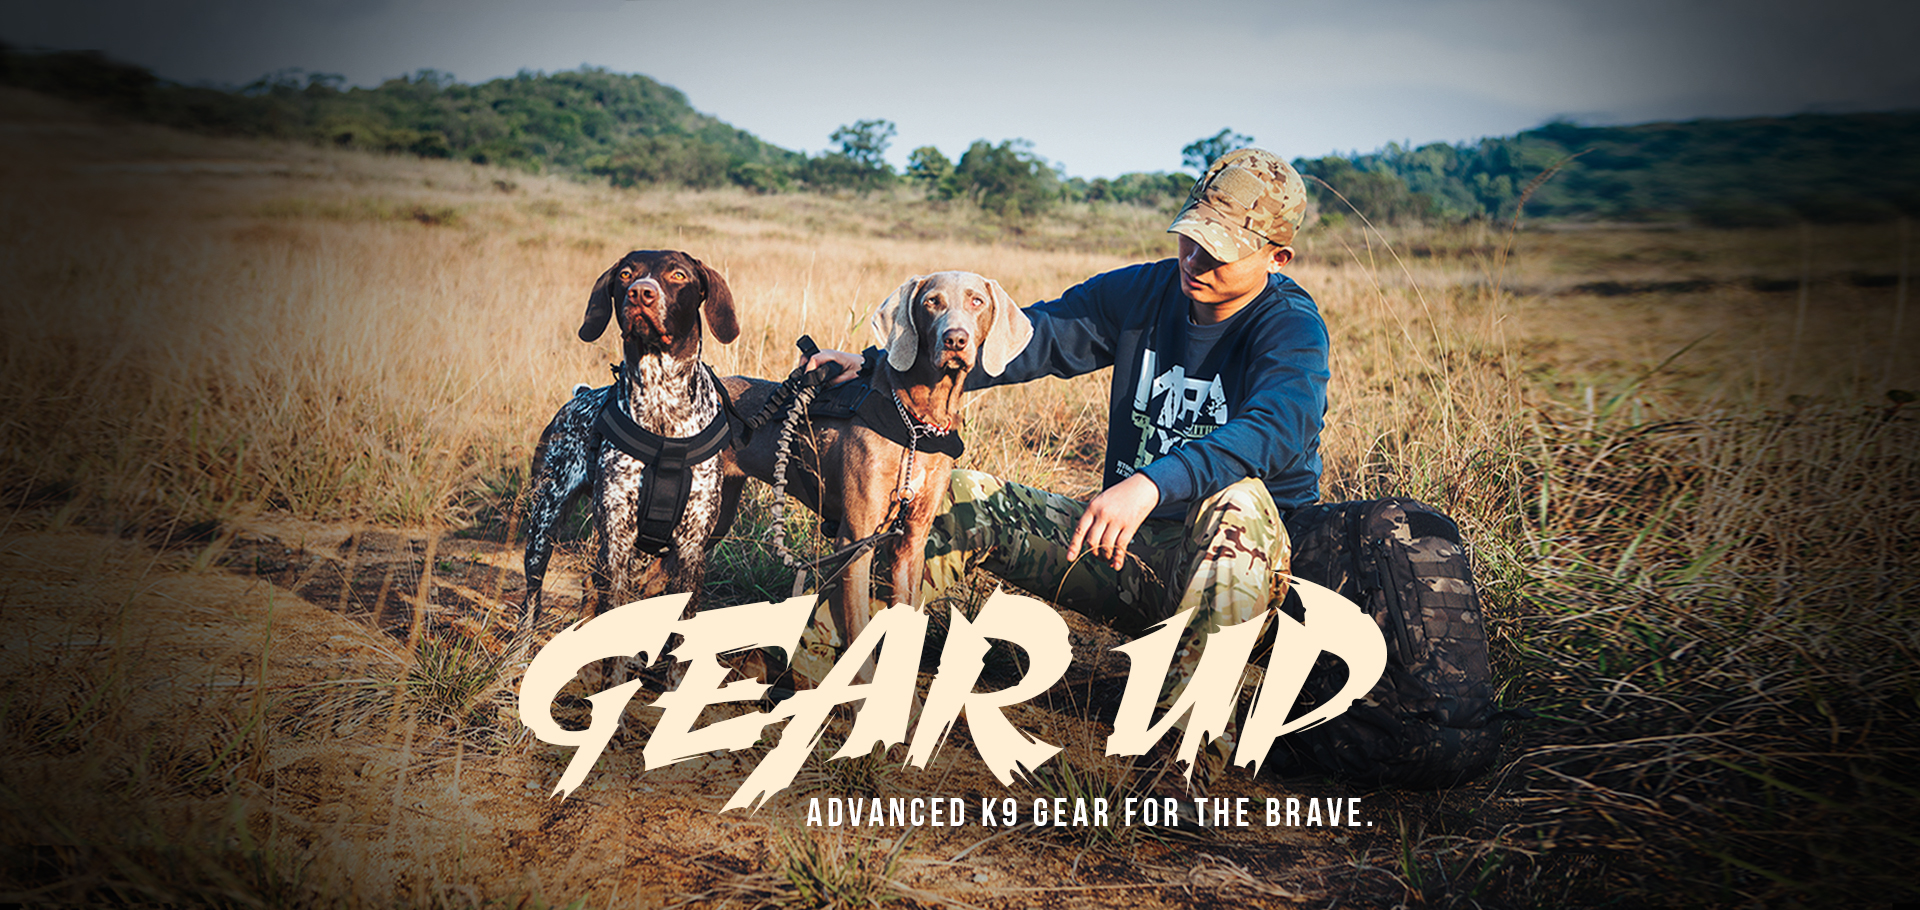 k9-gear-for-the-brave